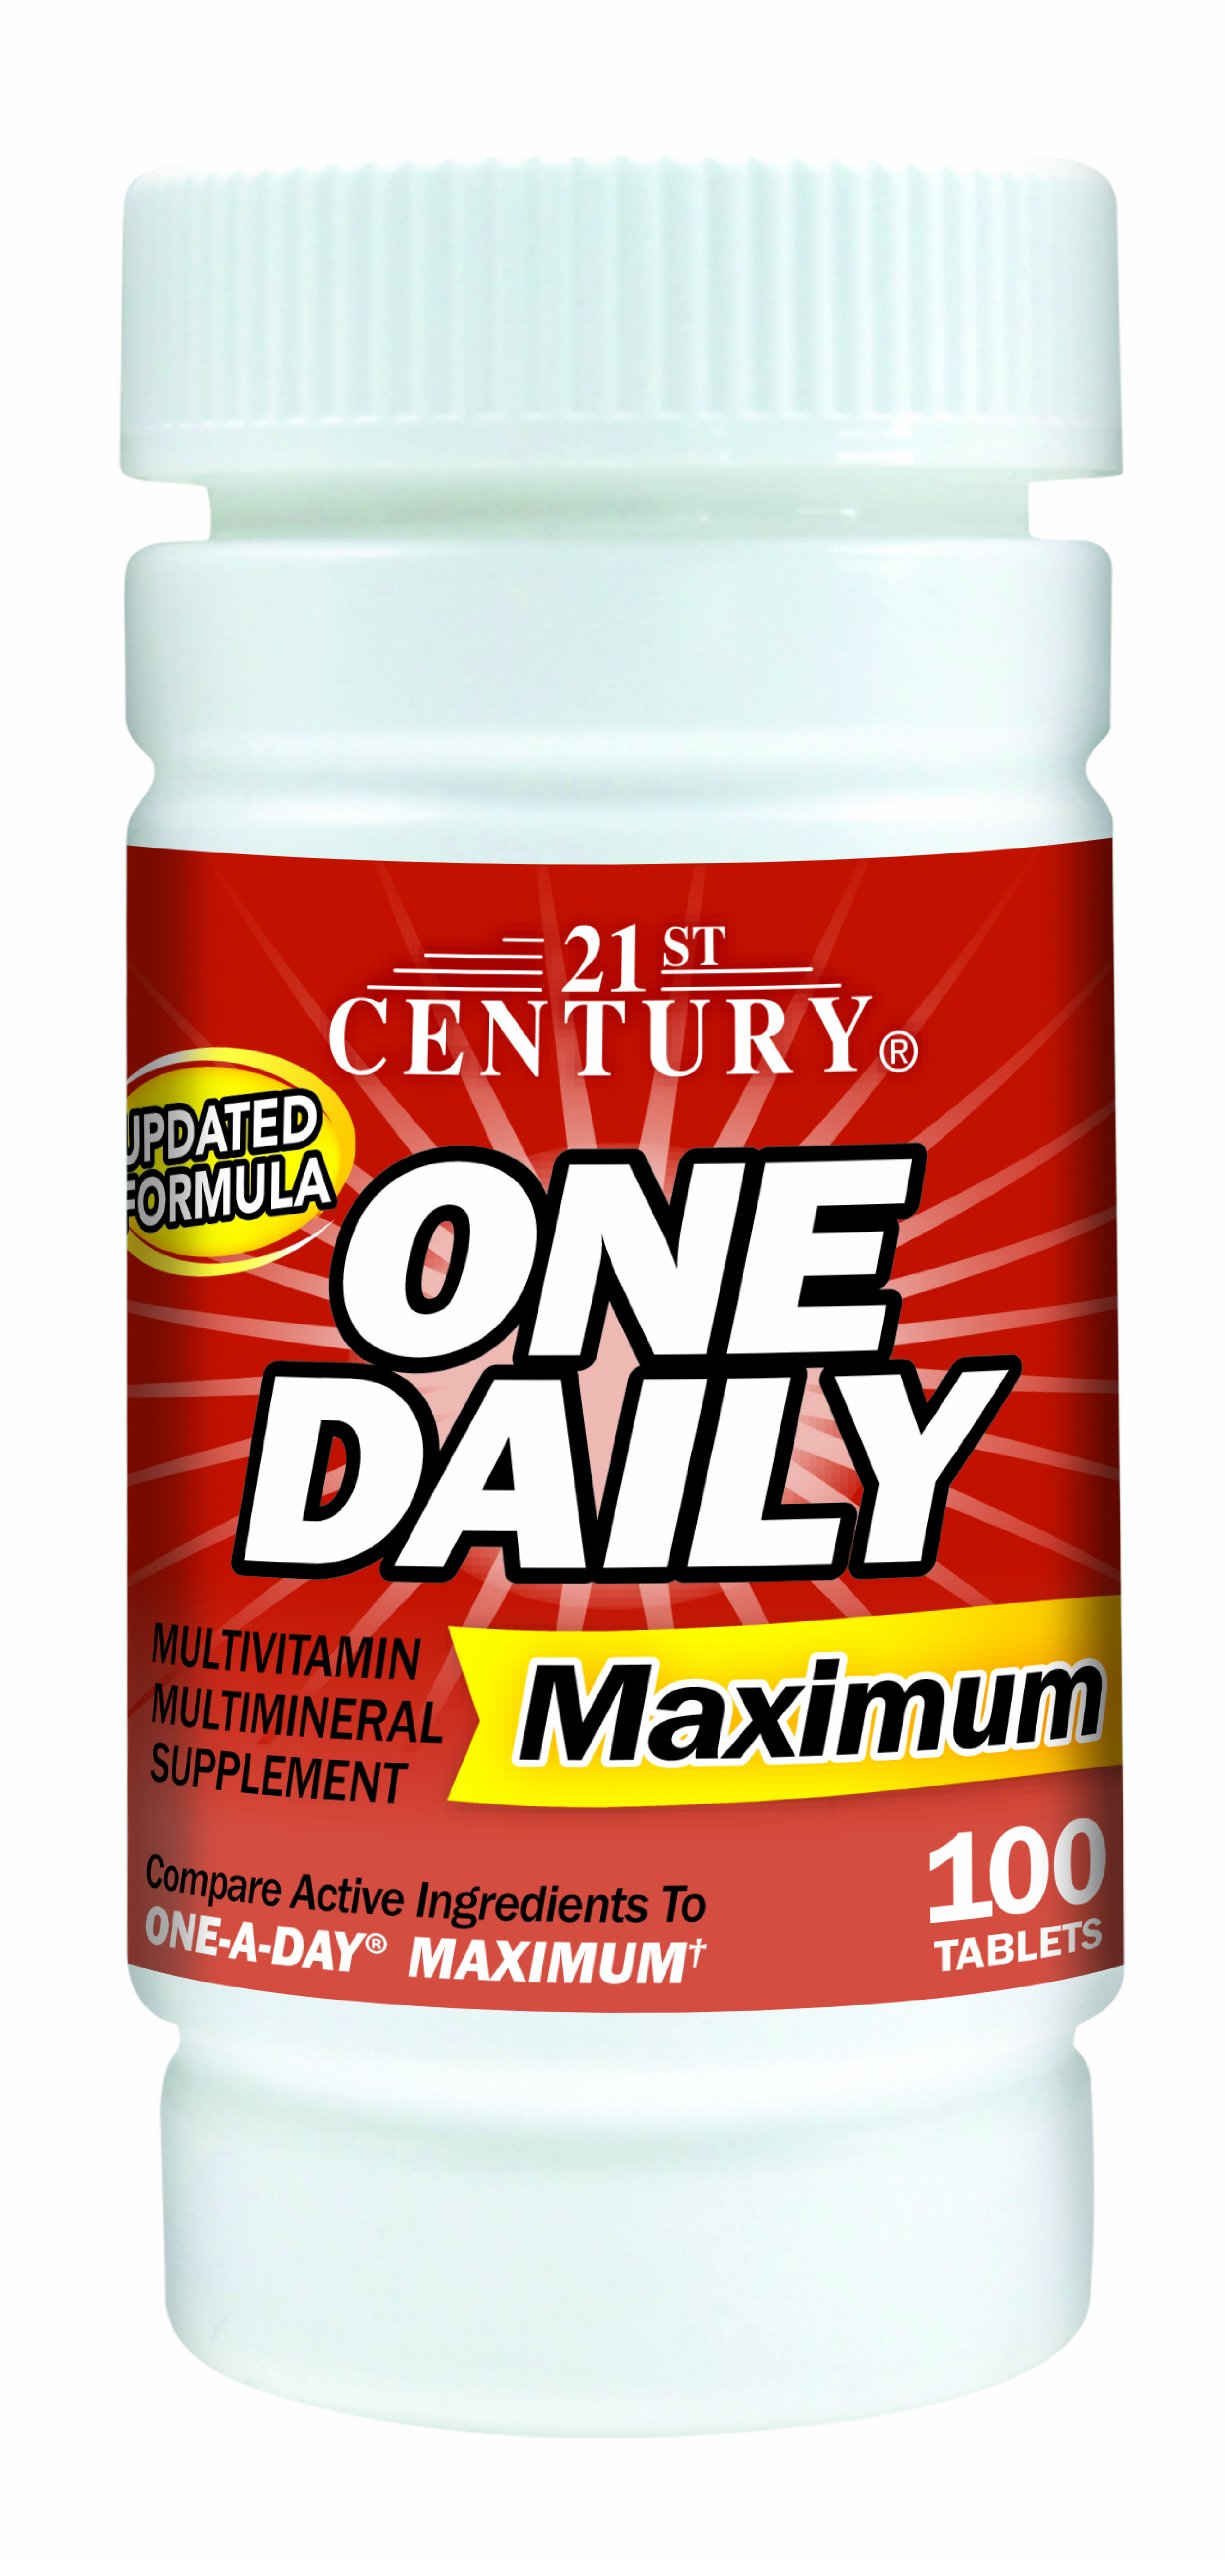 21st Century One Daily Maximum Tablets, 100 Count (Pack of 2)